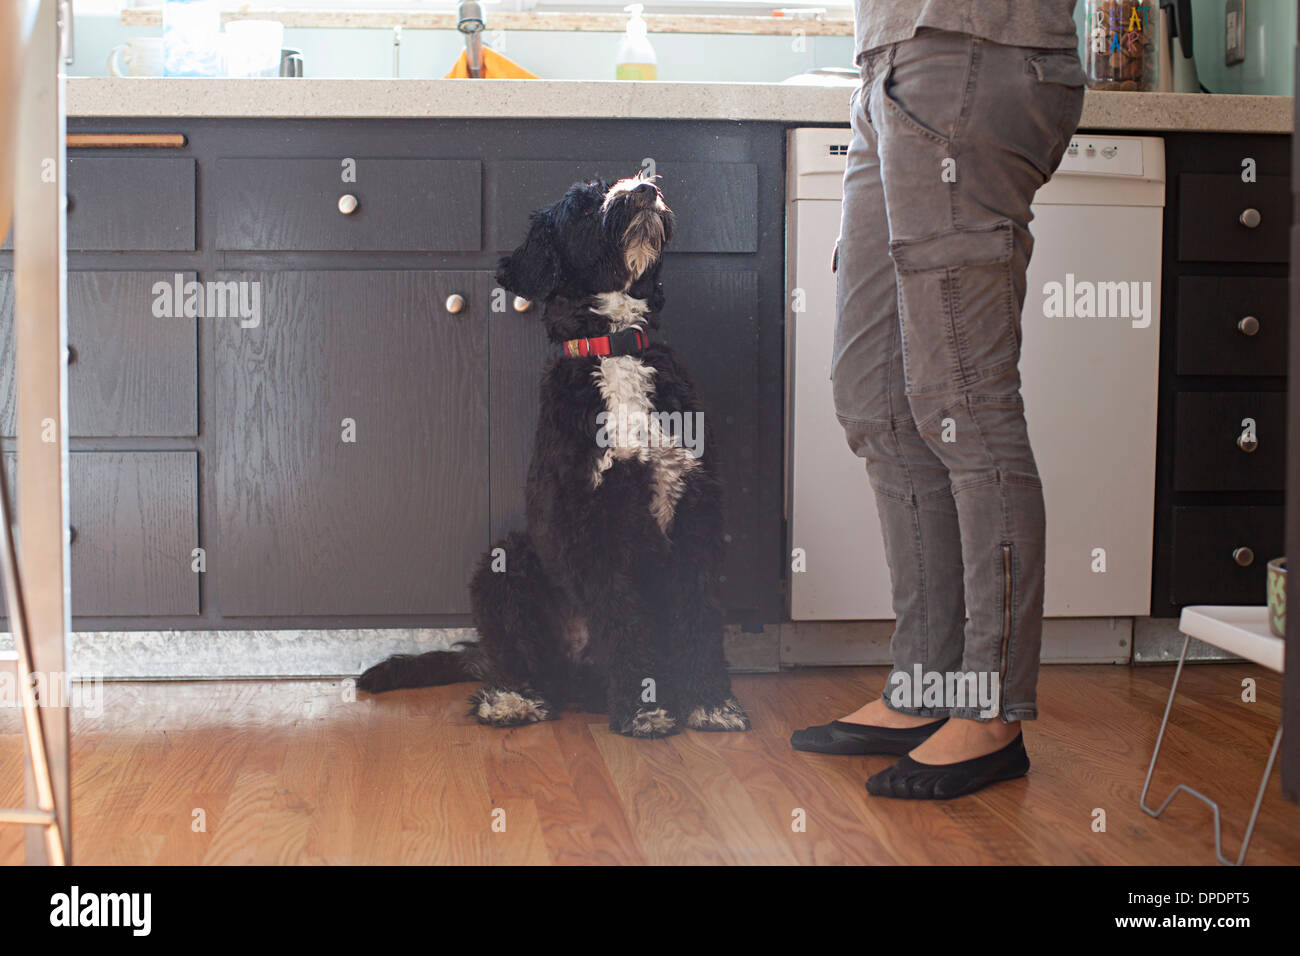 Pet dog looking up at owner in kitchen Stock Photo